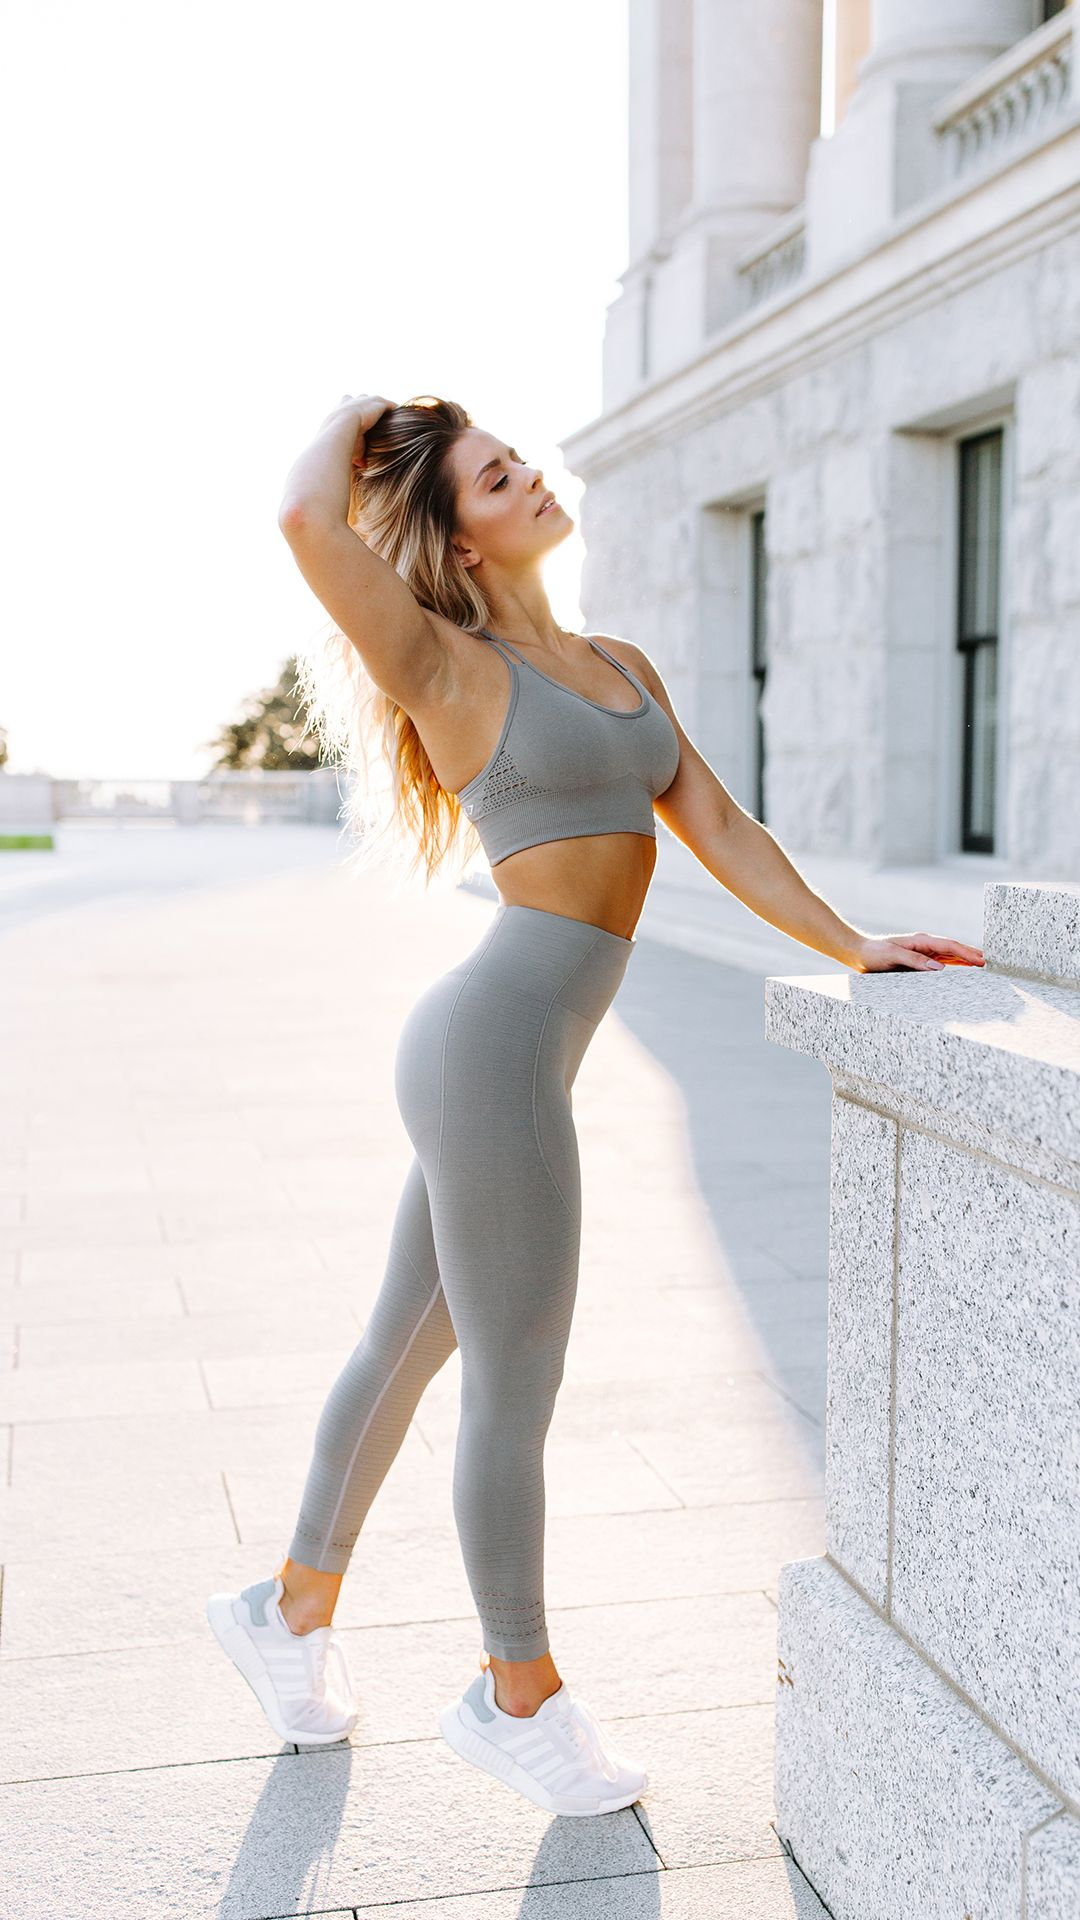 f00440c3d39ec With their stunning and form fitting shape, the Seamless High Waisted  leggings are beautifully different. - Gymshark printed logo- Ribbed detail-  High ...